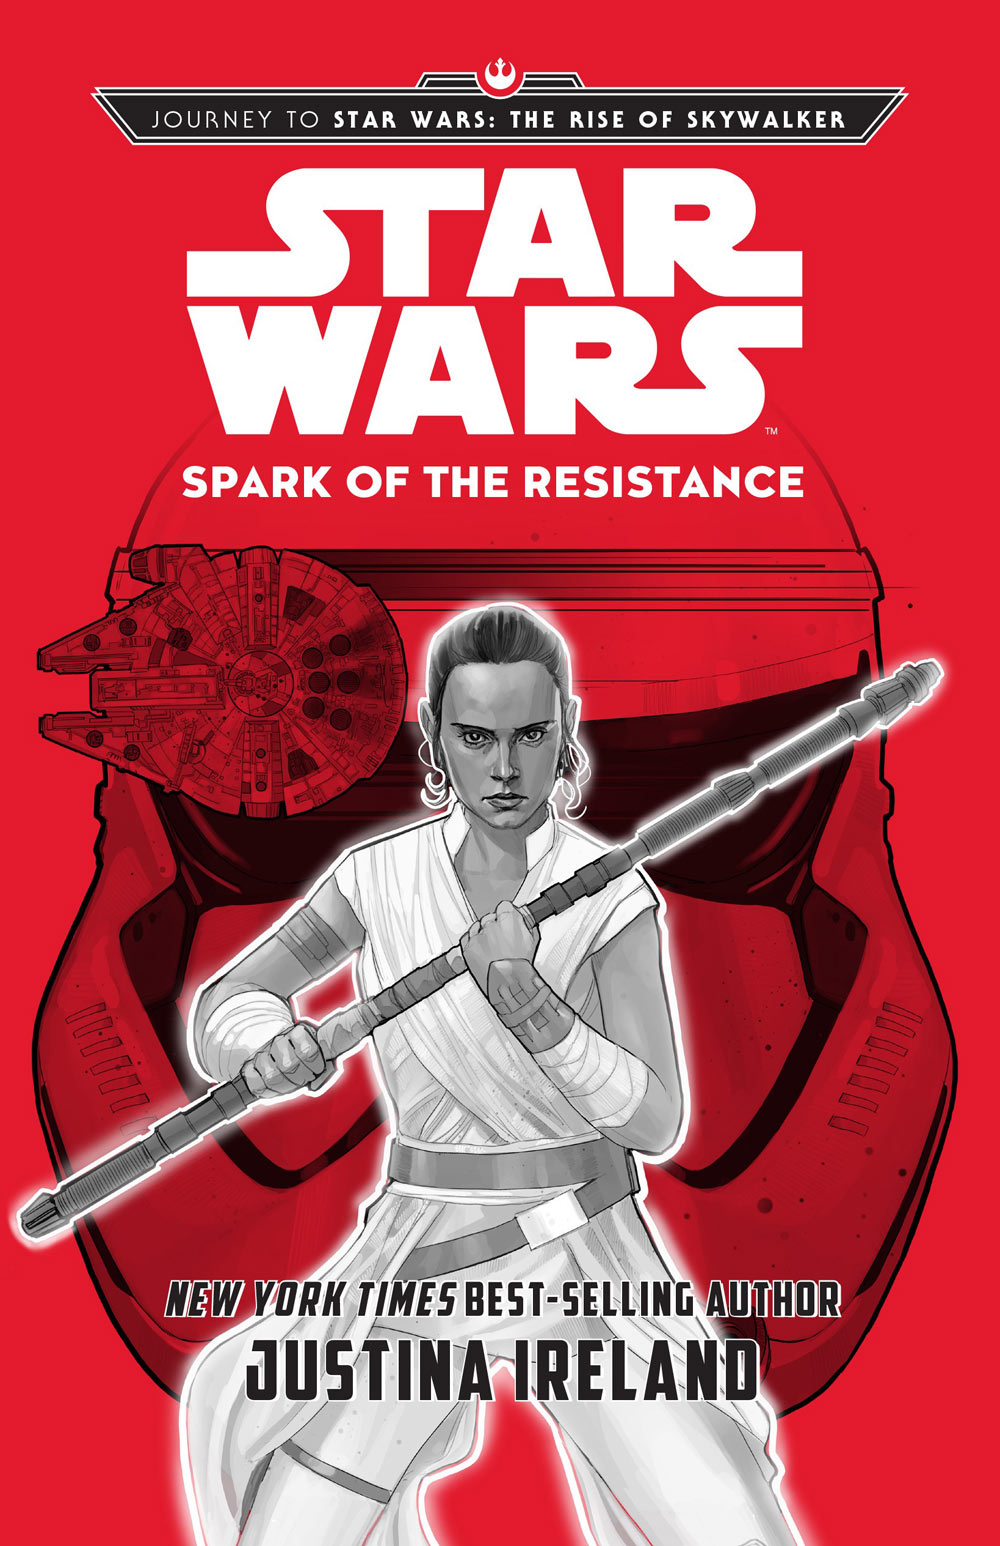 Spark of the Resistance (Journey to Star Wars: The Rise of Skywalker)